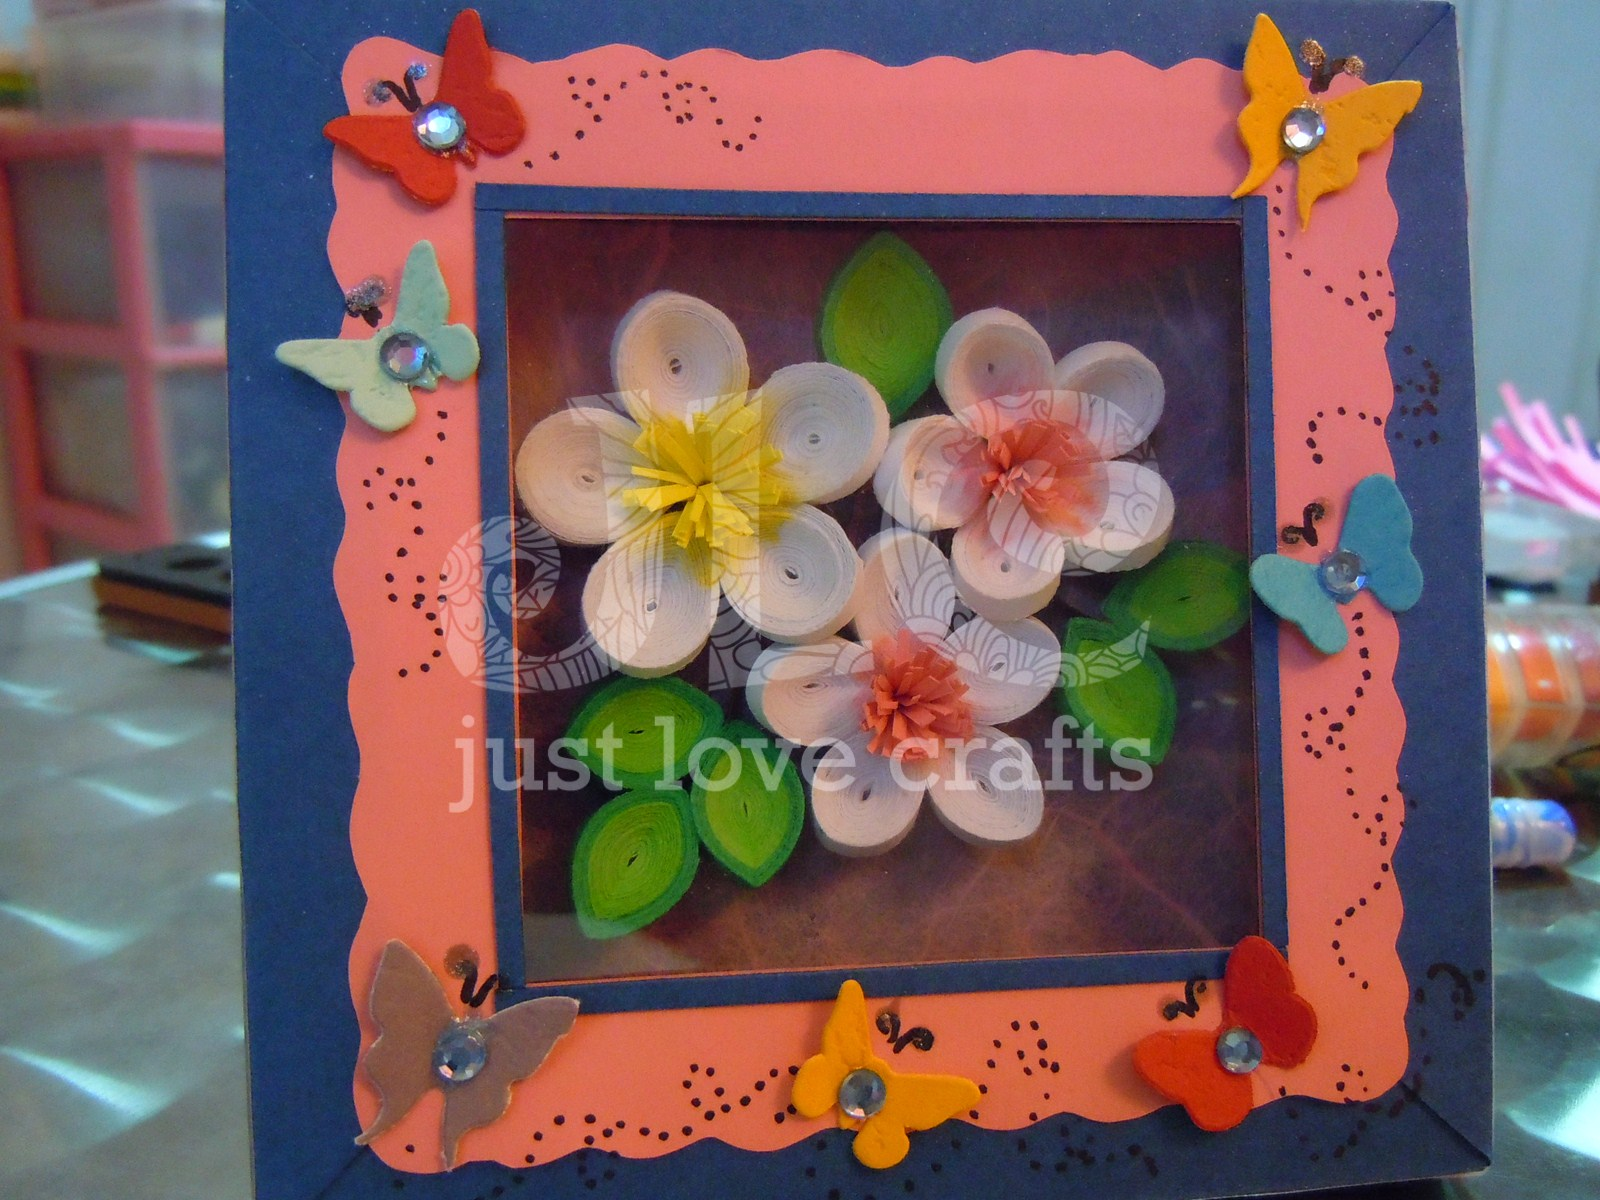 Just Love Crafts: Self framed shadow box for Quilling - 3